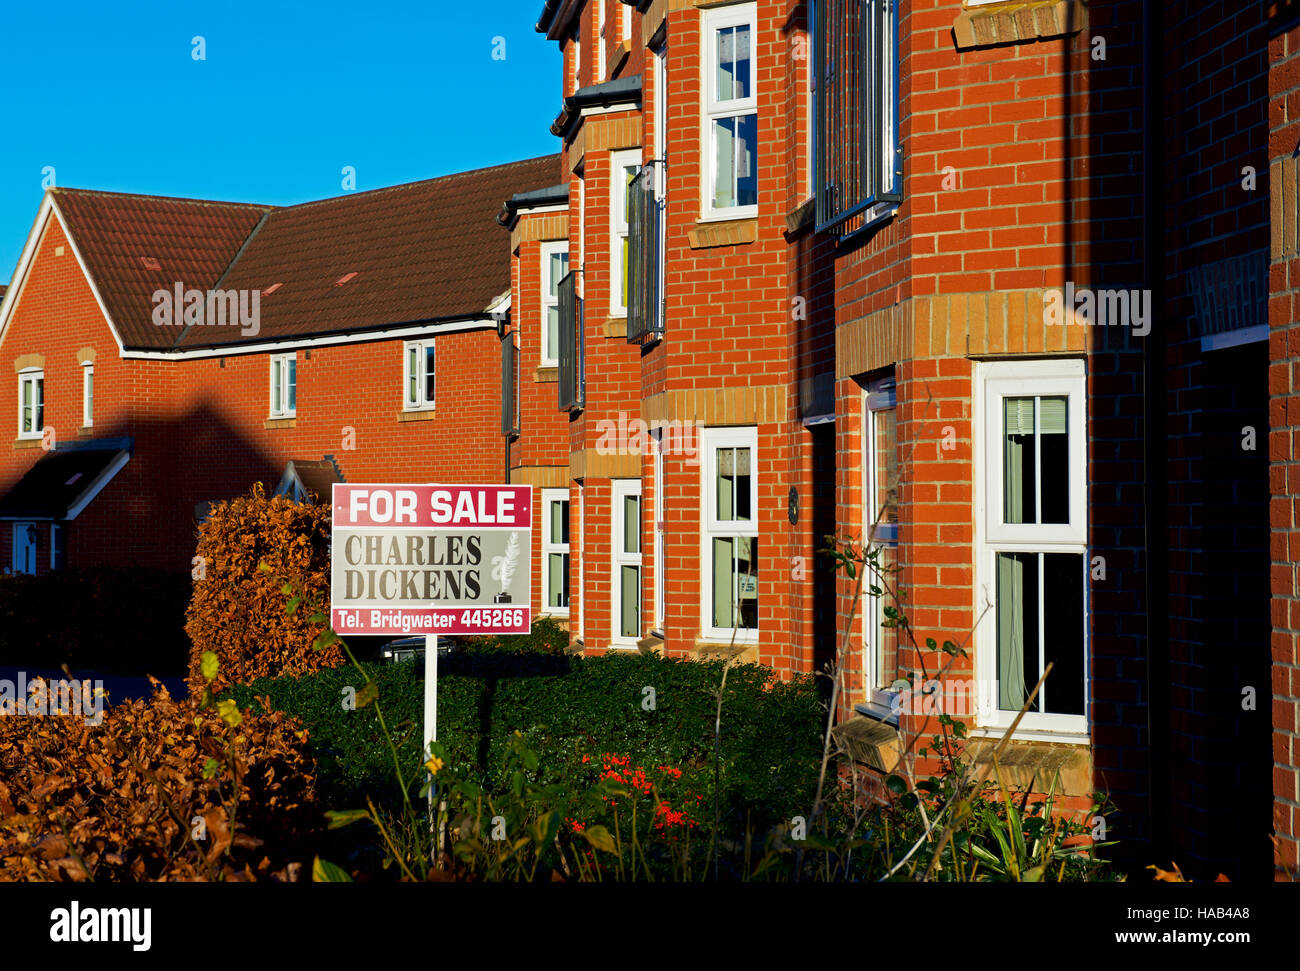 House for sale sign in Stockmoor Village, a new housing development near Bridgwater, Somerset, England UK - Stock Image